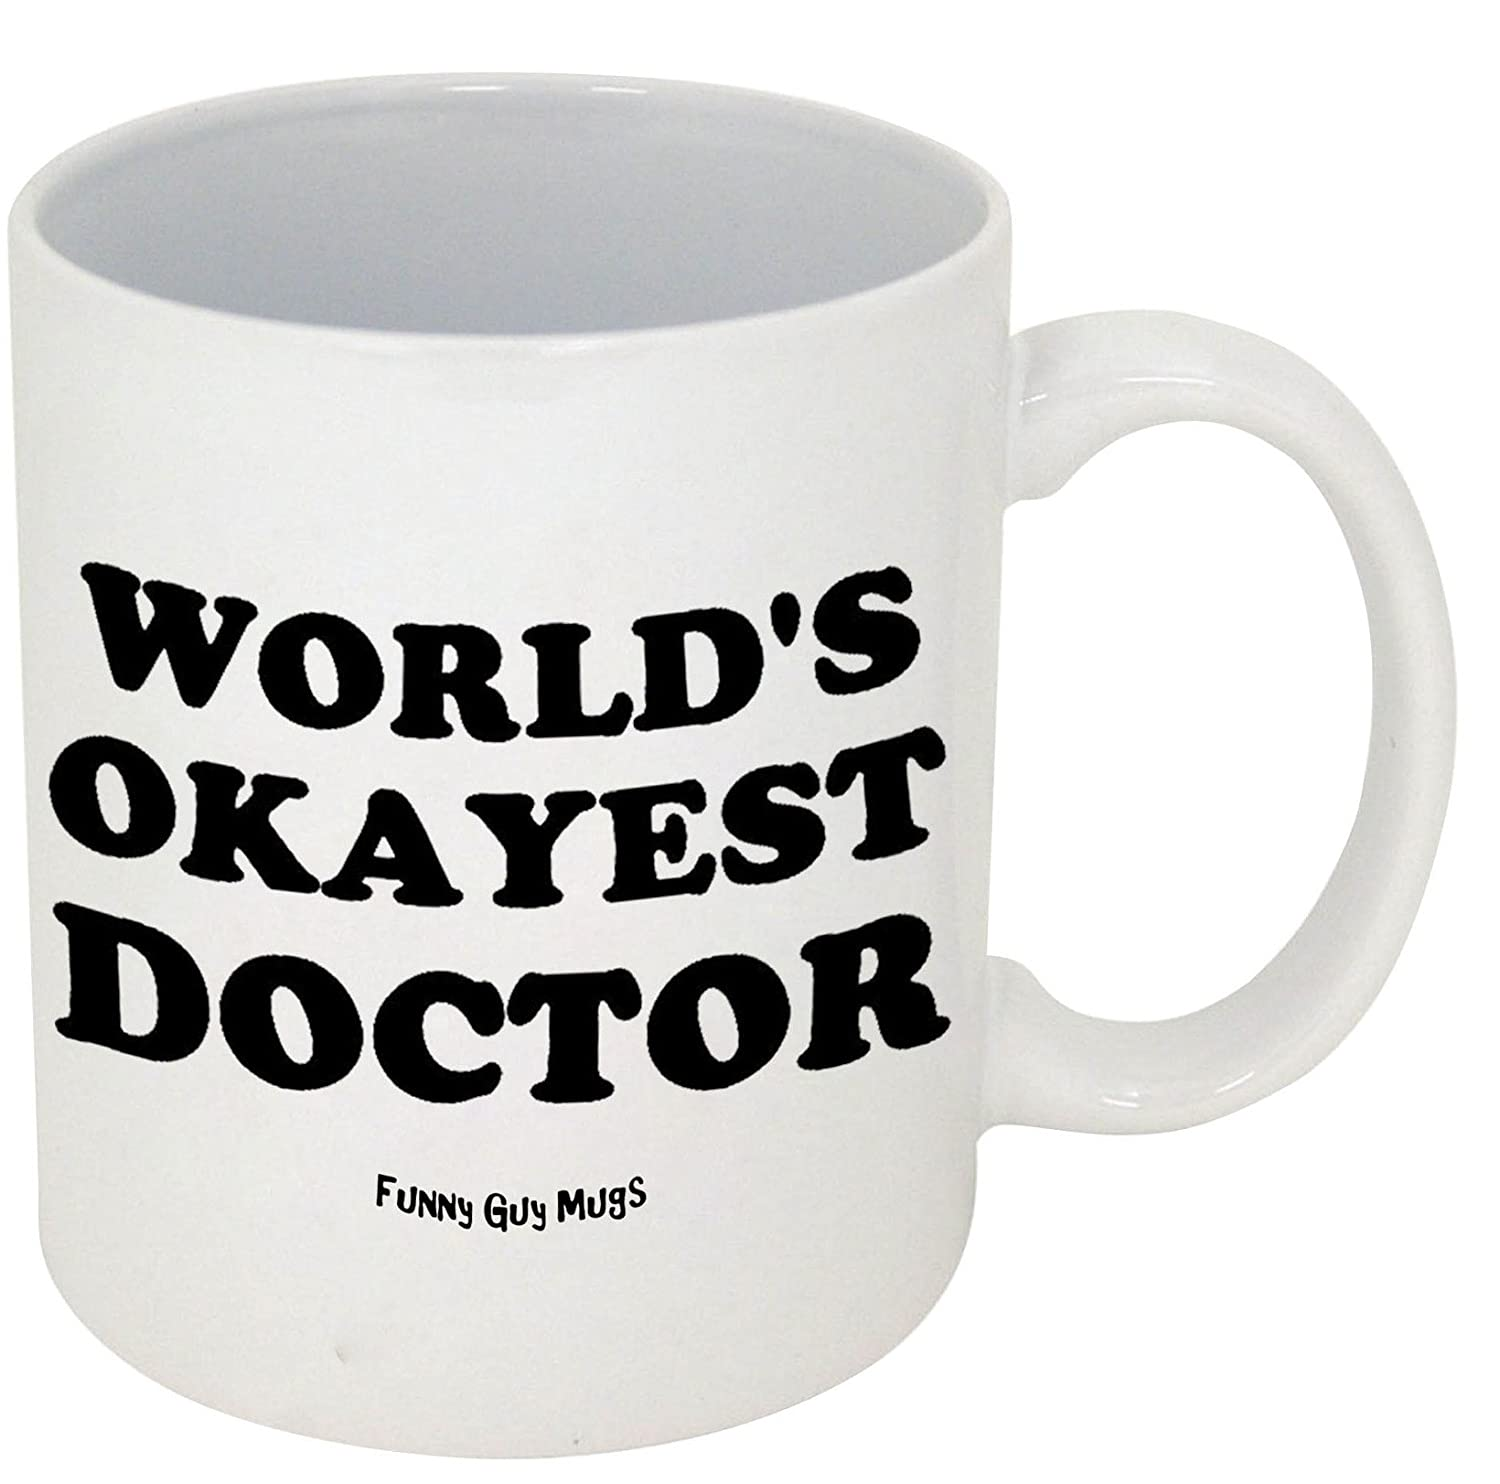 Worlds best doctor coffee mugs - Amazon Com Funny Guy Mugs World S Okayest Doctor Ceramic Coffee Mug White 11 Ounce Kitchen Dining